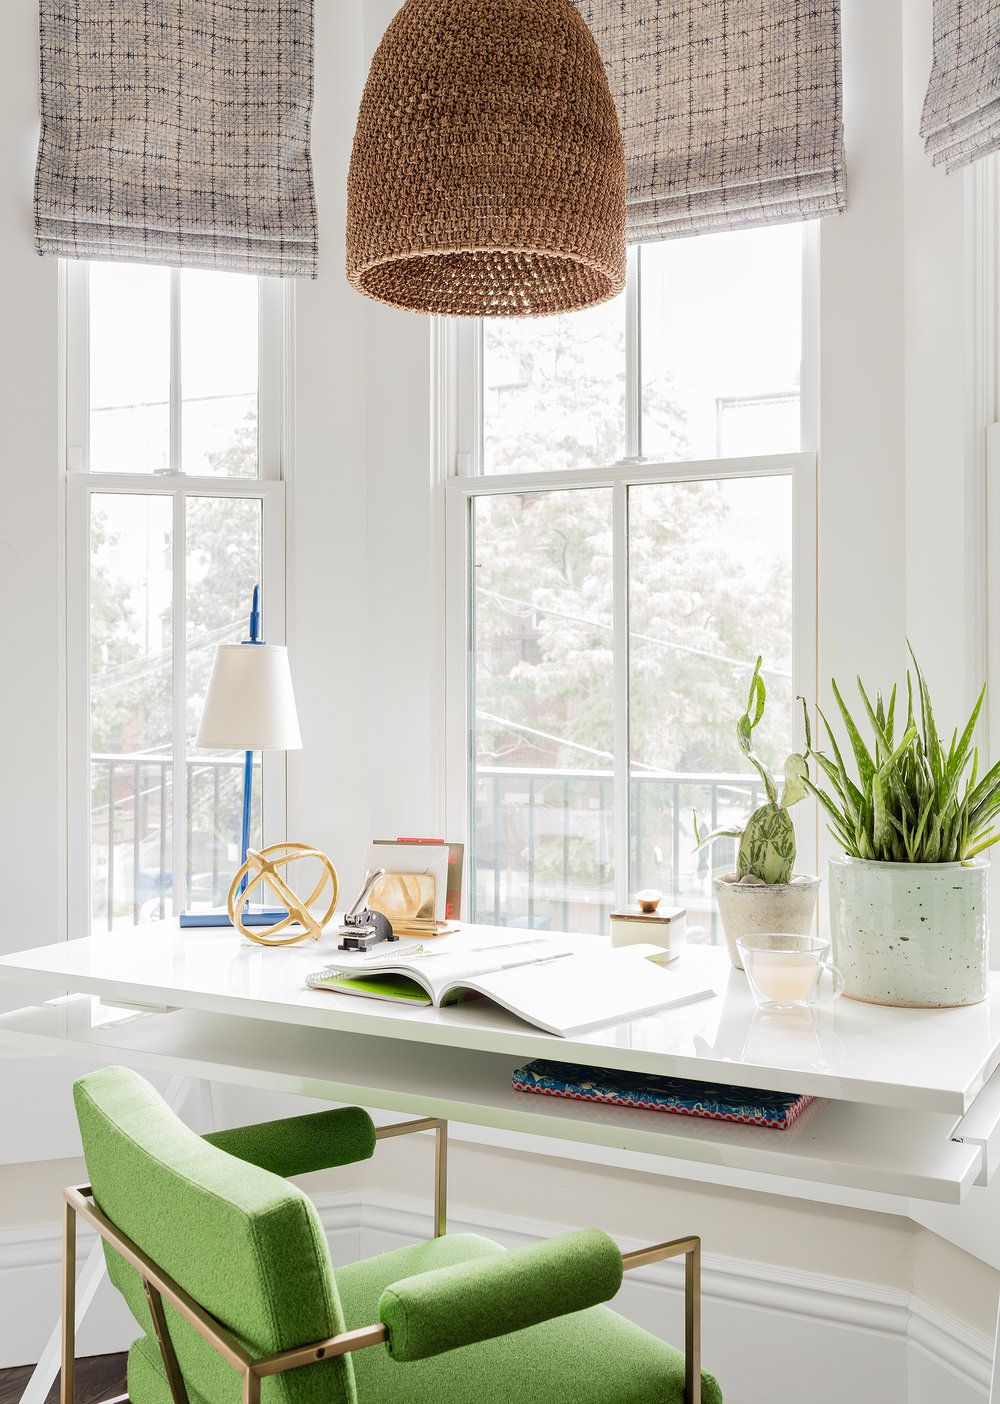 Home Office Ideas Putting The Desk Against A Window To Be Inspired By The View Hudson Interior Des Home Office Design Boston Interior Design Home Office Decor #office #desk #in #living #room